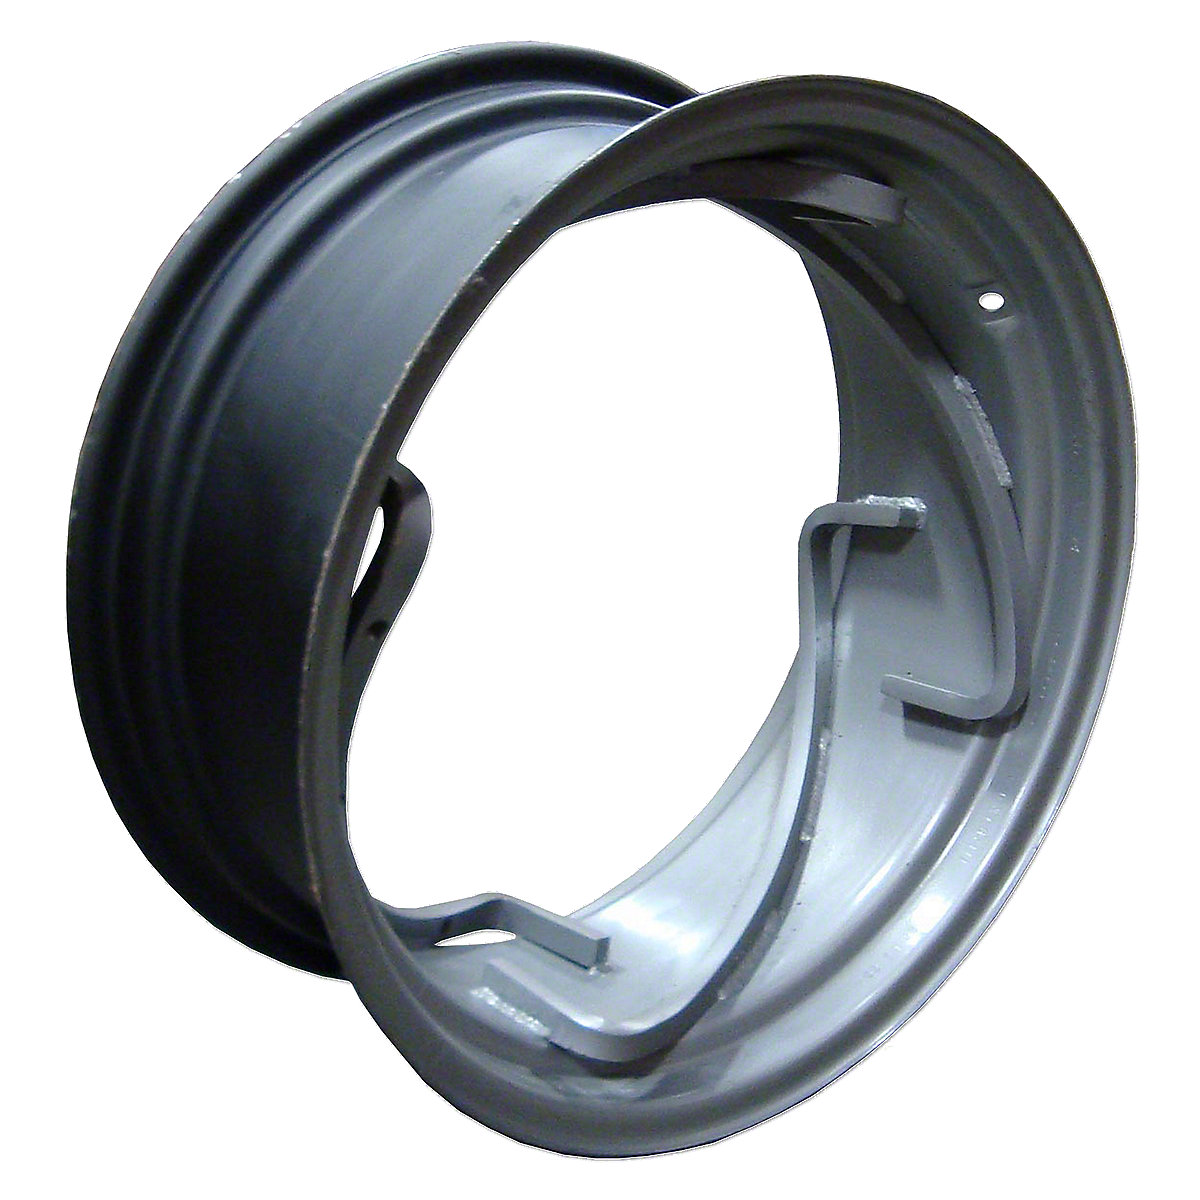 10X24 Rear Spin Out Rim For Oliver CA, D10, D12.